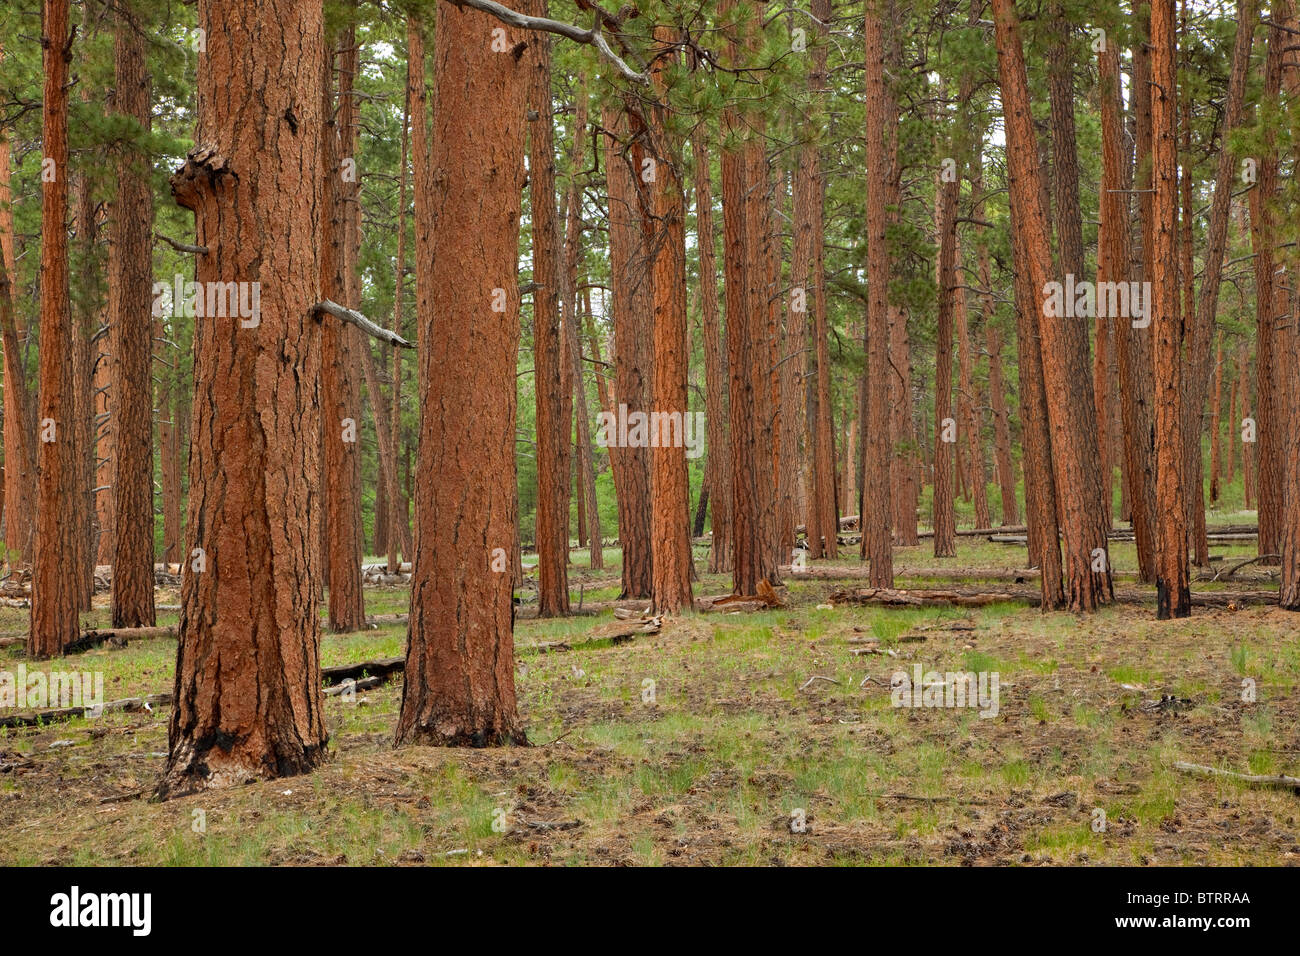 Mature ponderosa pine forest at Fire Point, area burned by frequent fires on North Rim of Grand Canyon National - Stock Image